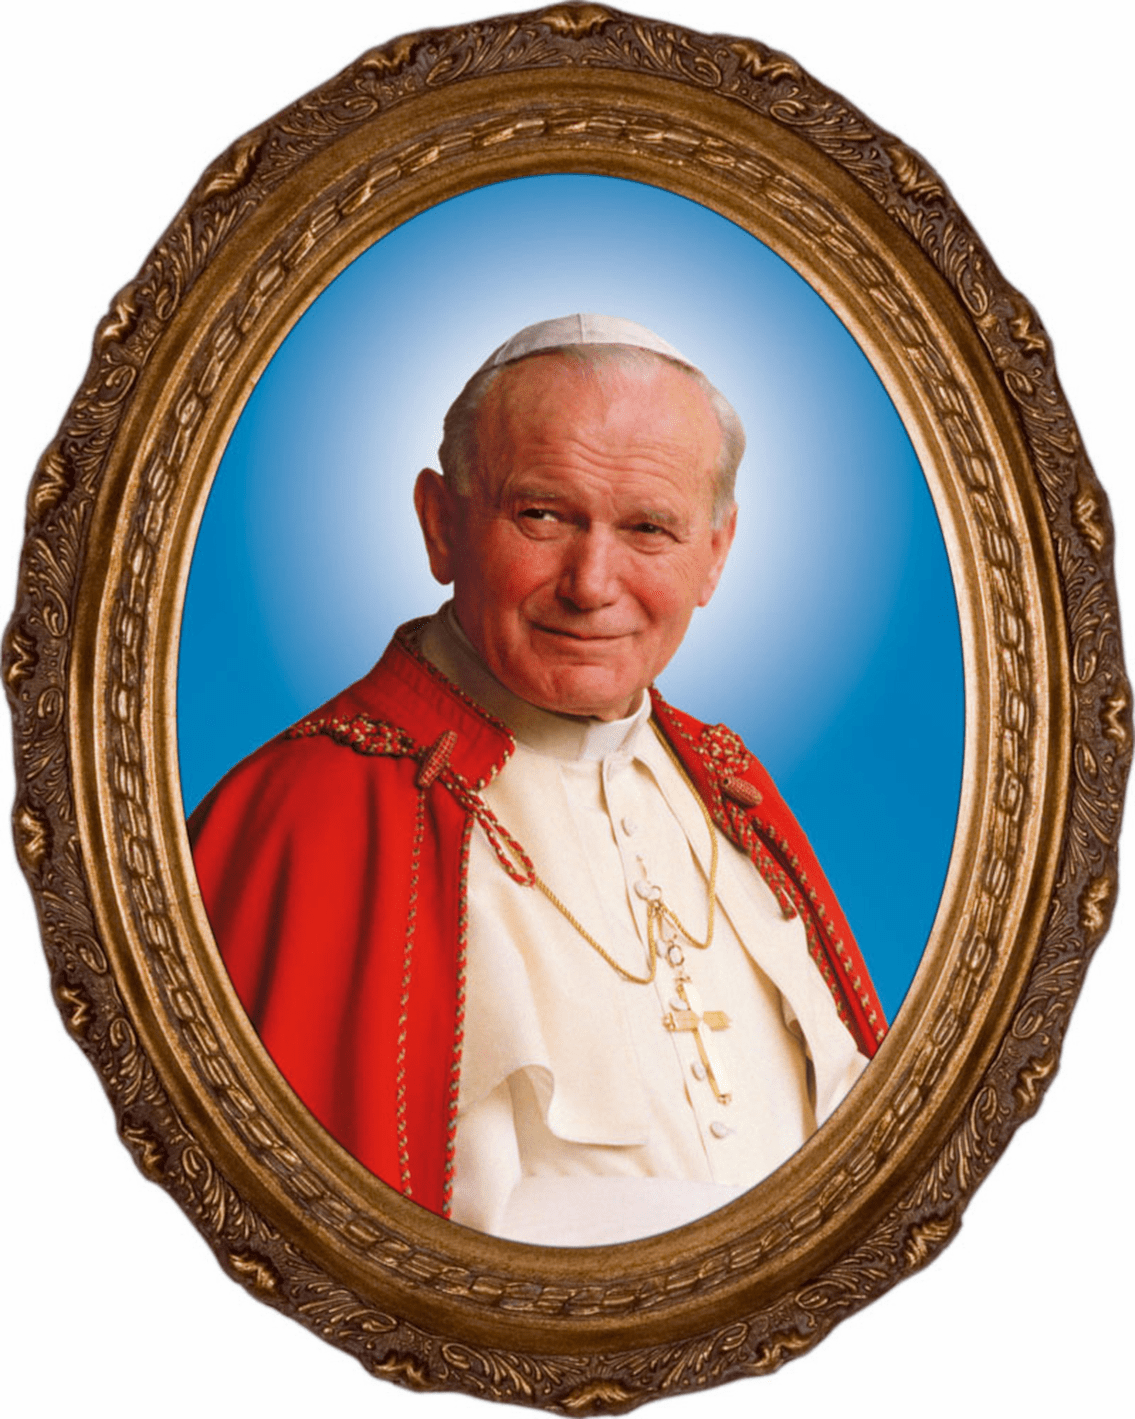 Nelson's Gifts Pope John Paul II Sainthood Formal Canvas in Oval Frame Wall Picture